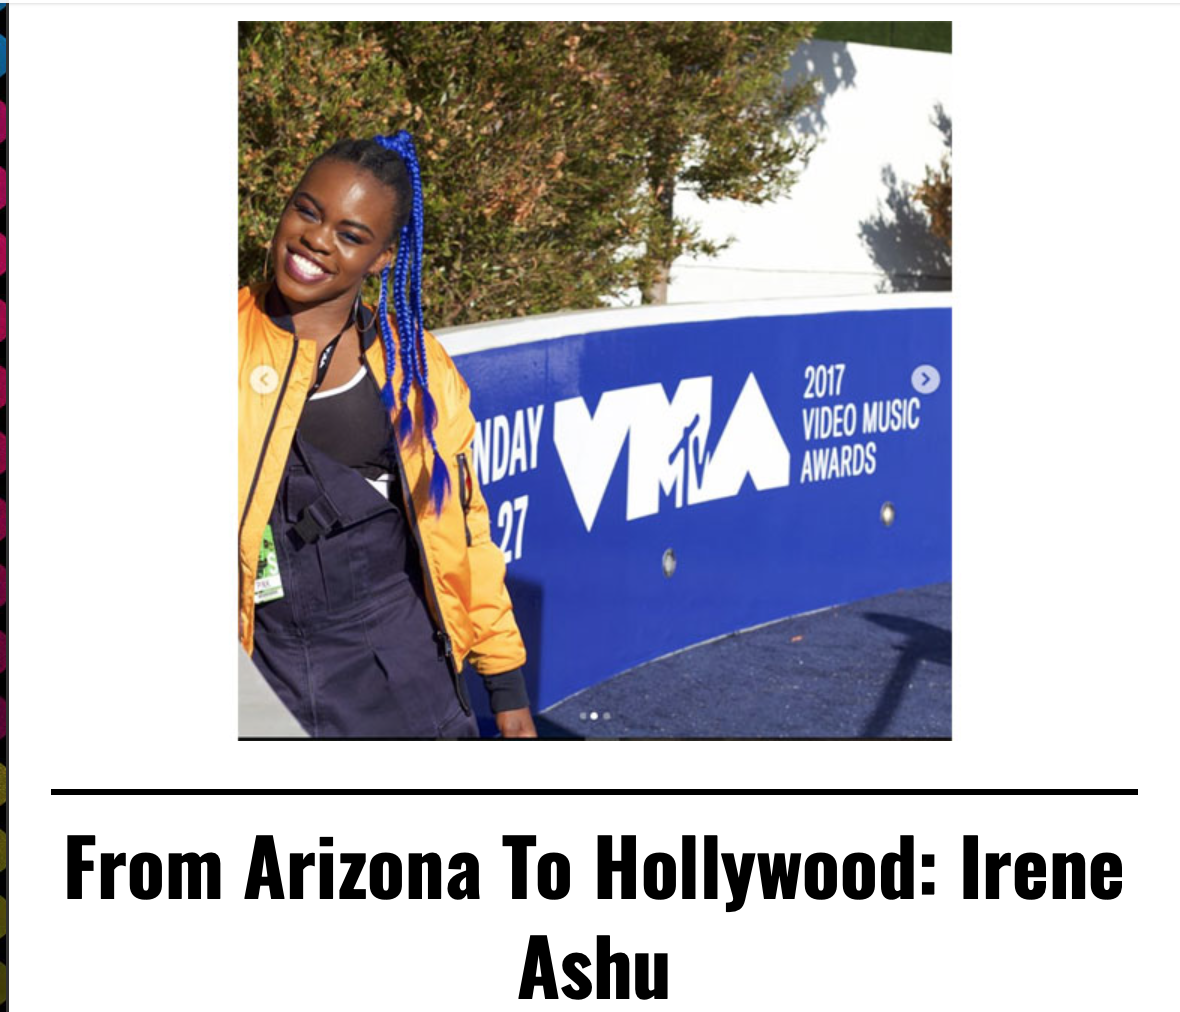 https://independentmusicnews24.com/news/from-arizona-to-hollywood-irene-ashu